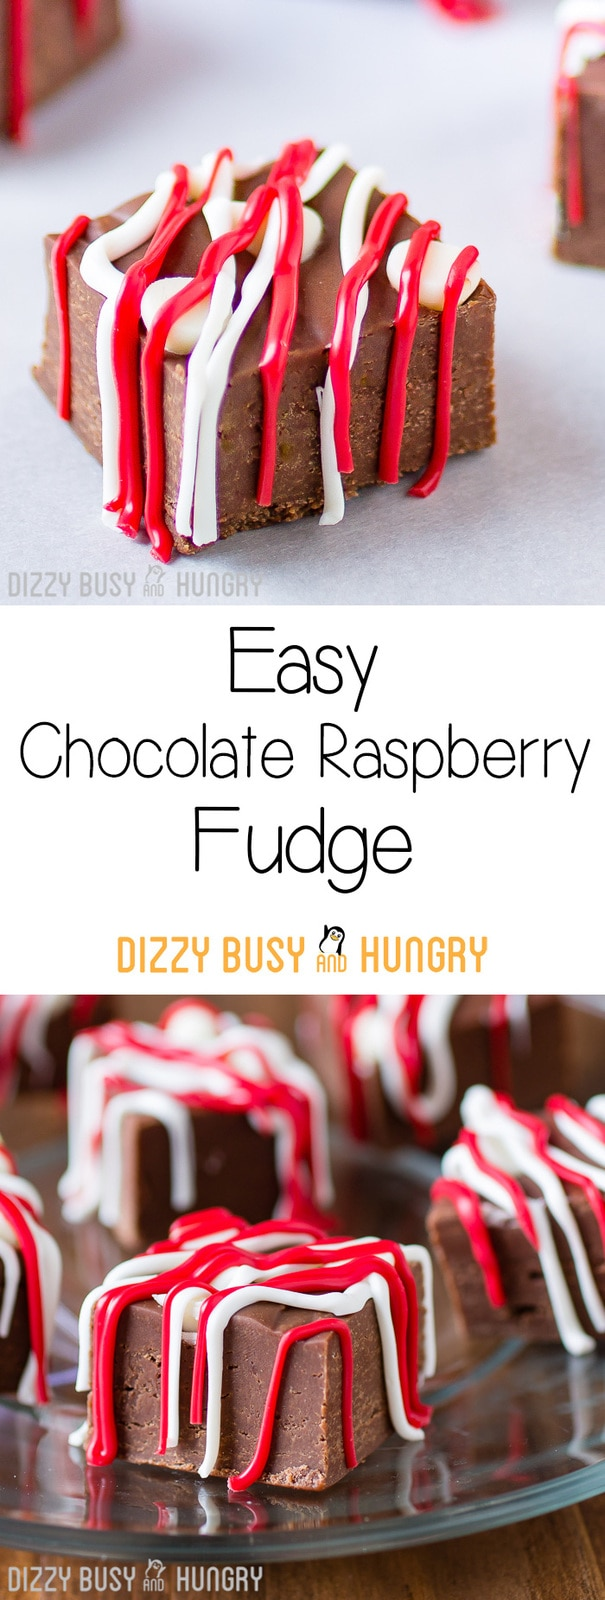 Easy Chocolate Raspberry Fudge | DizzyBusyandHungry.com - Smooth, creamy chocolate fudge recipe with the sweet and fruity taste of raspberries!